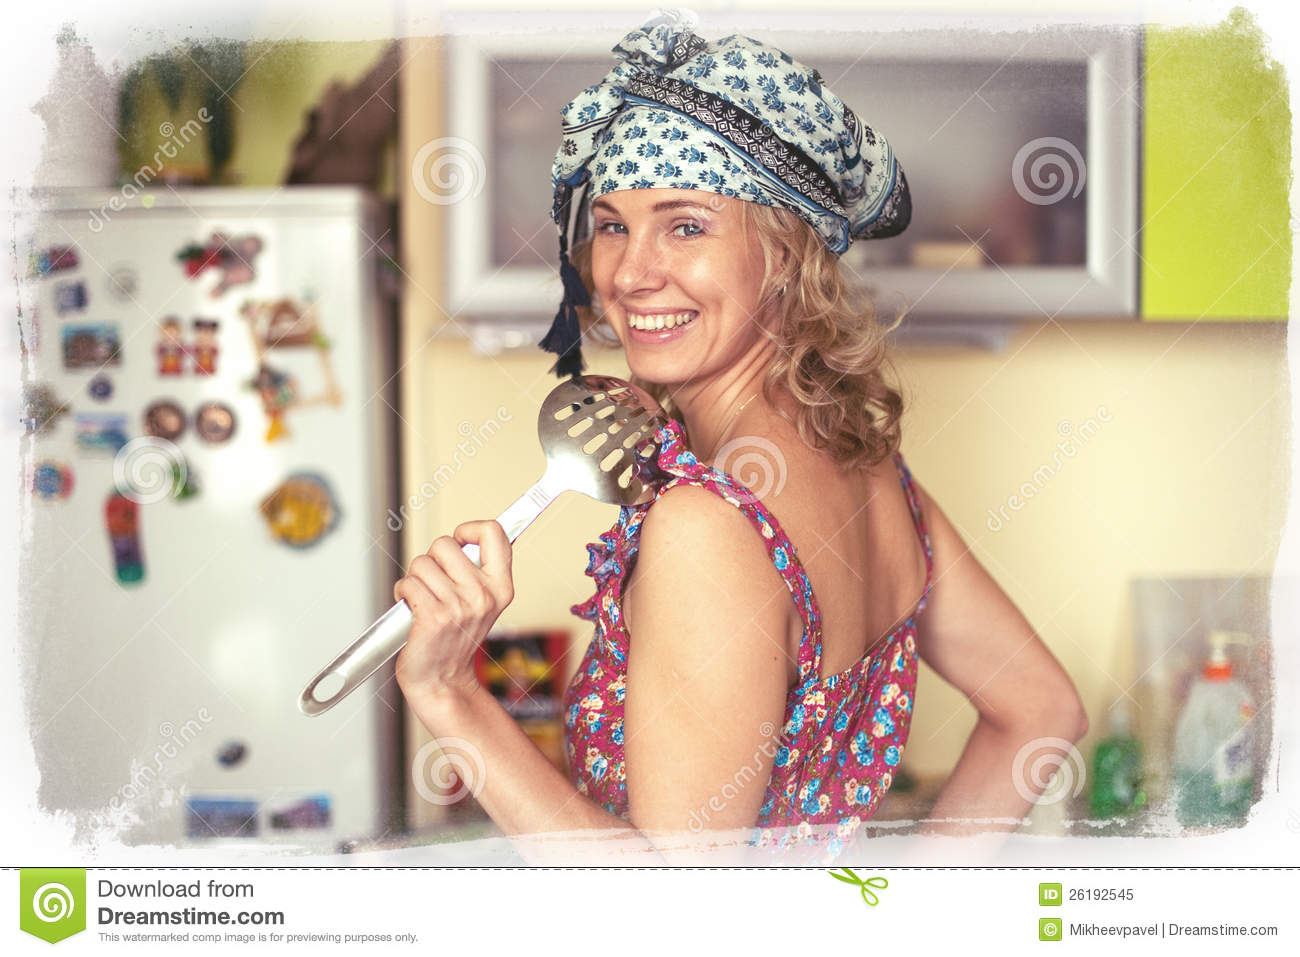 Funny portrait of the housewife in the kitchen